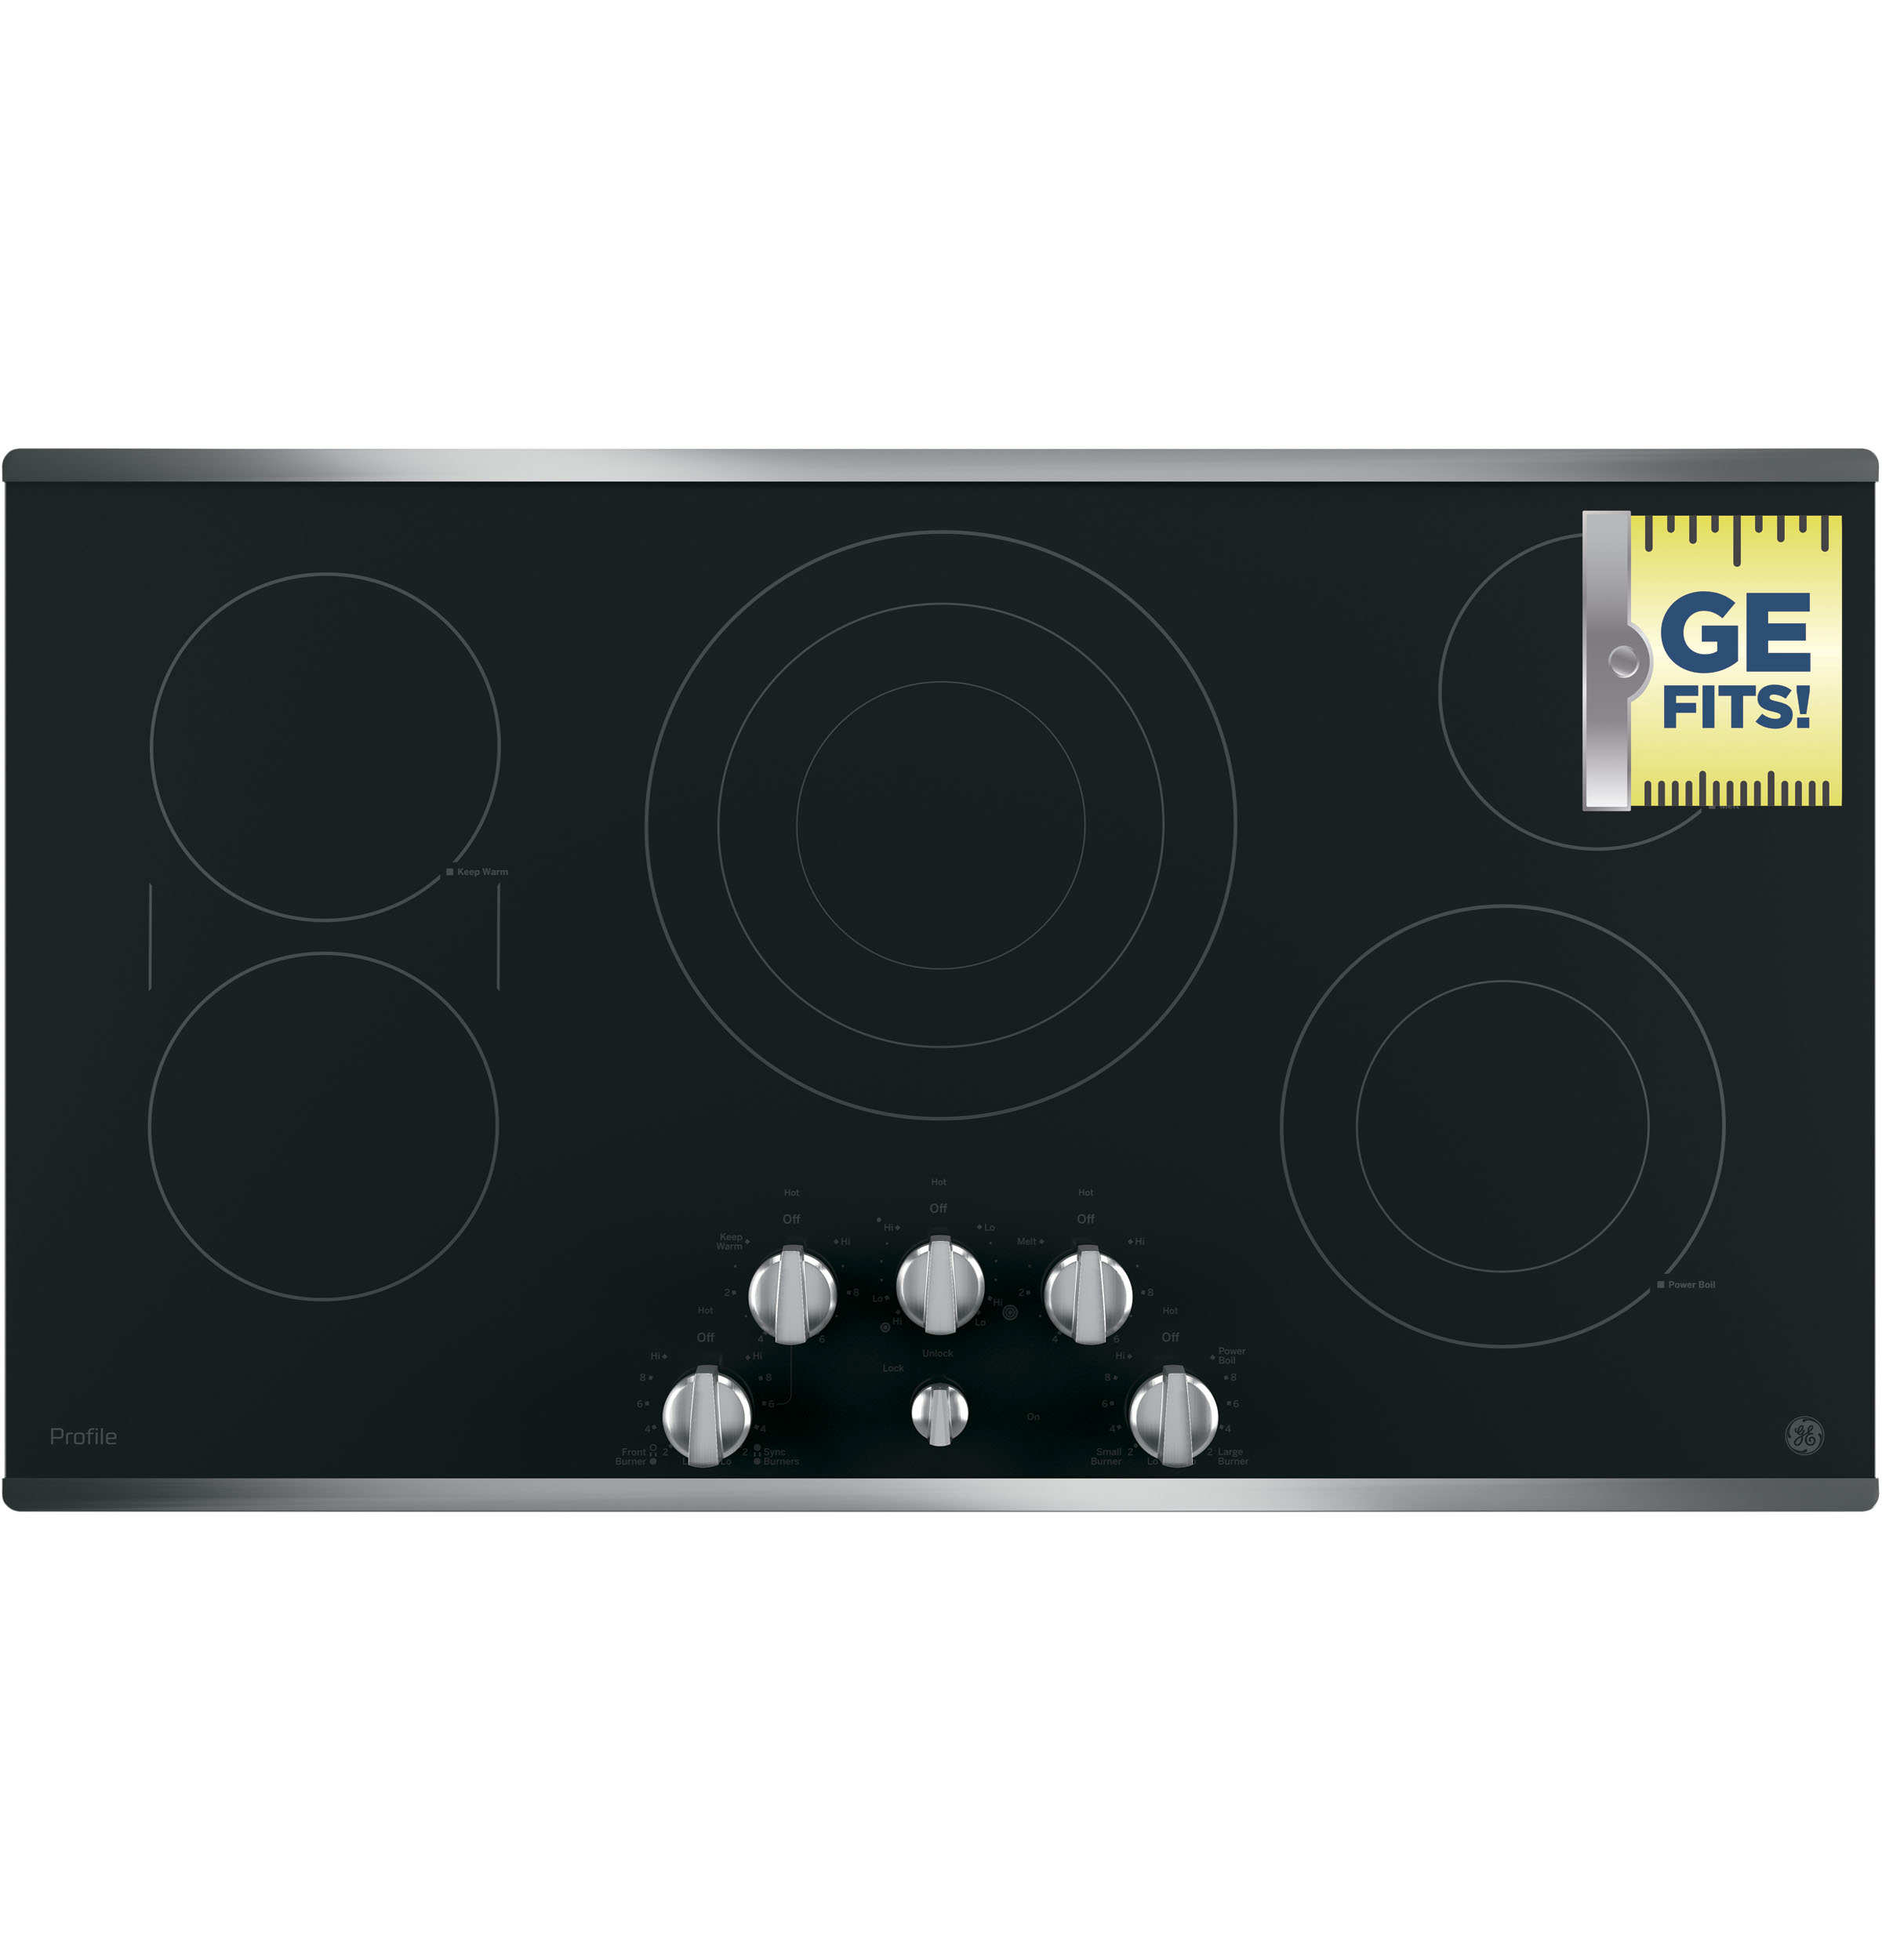 "Model: PP7036SJSS | GE Profile GE Profile™ Series 36"" Built-In Knob Control Cooktop"